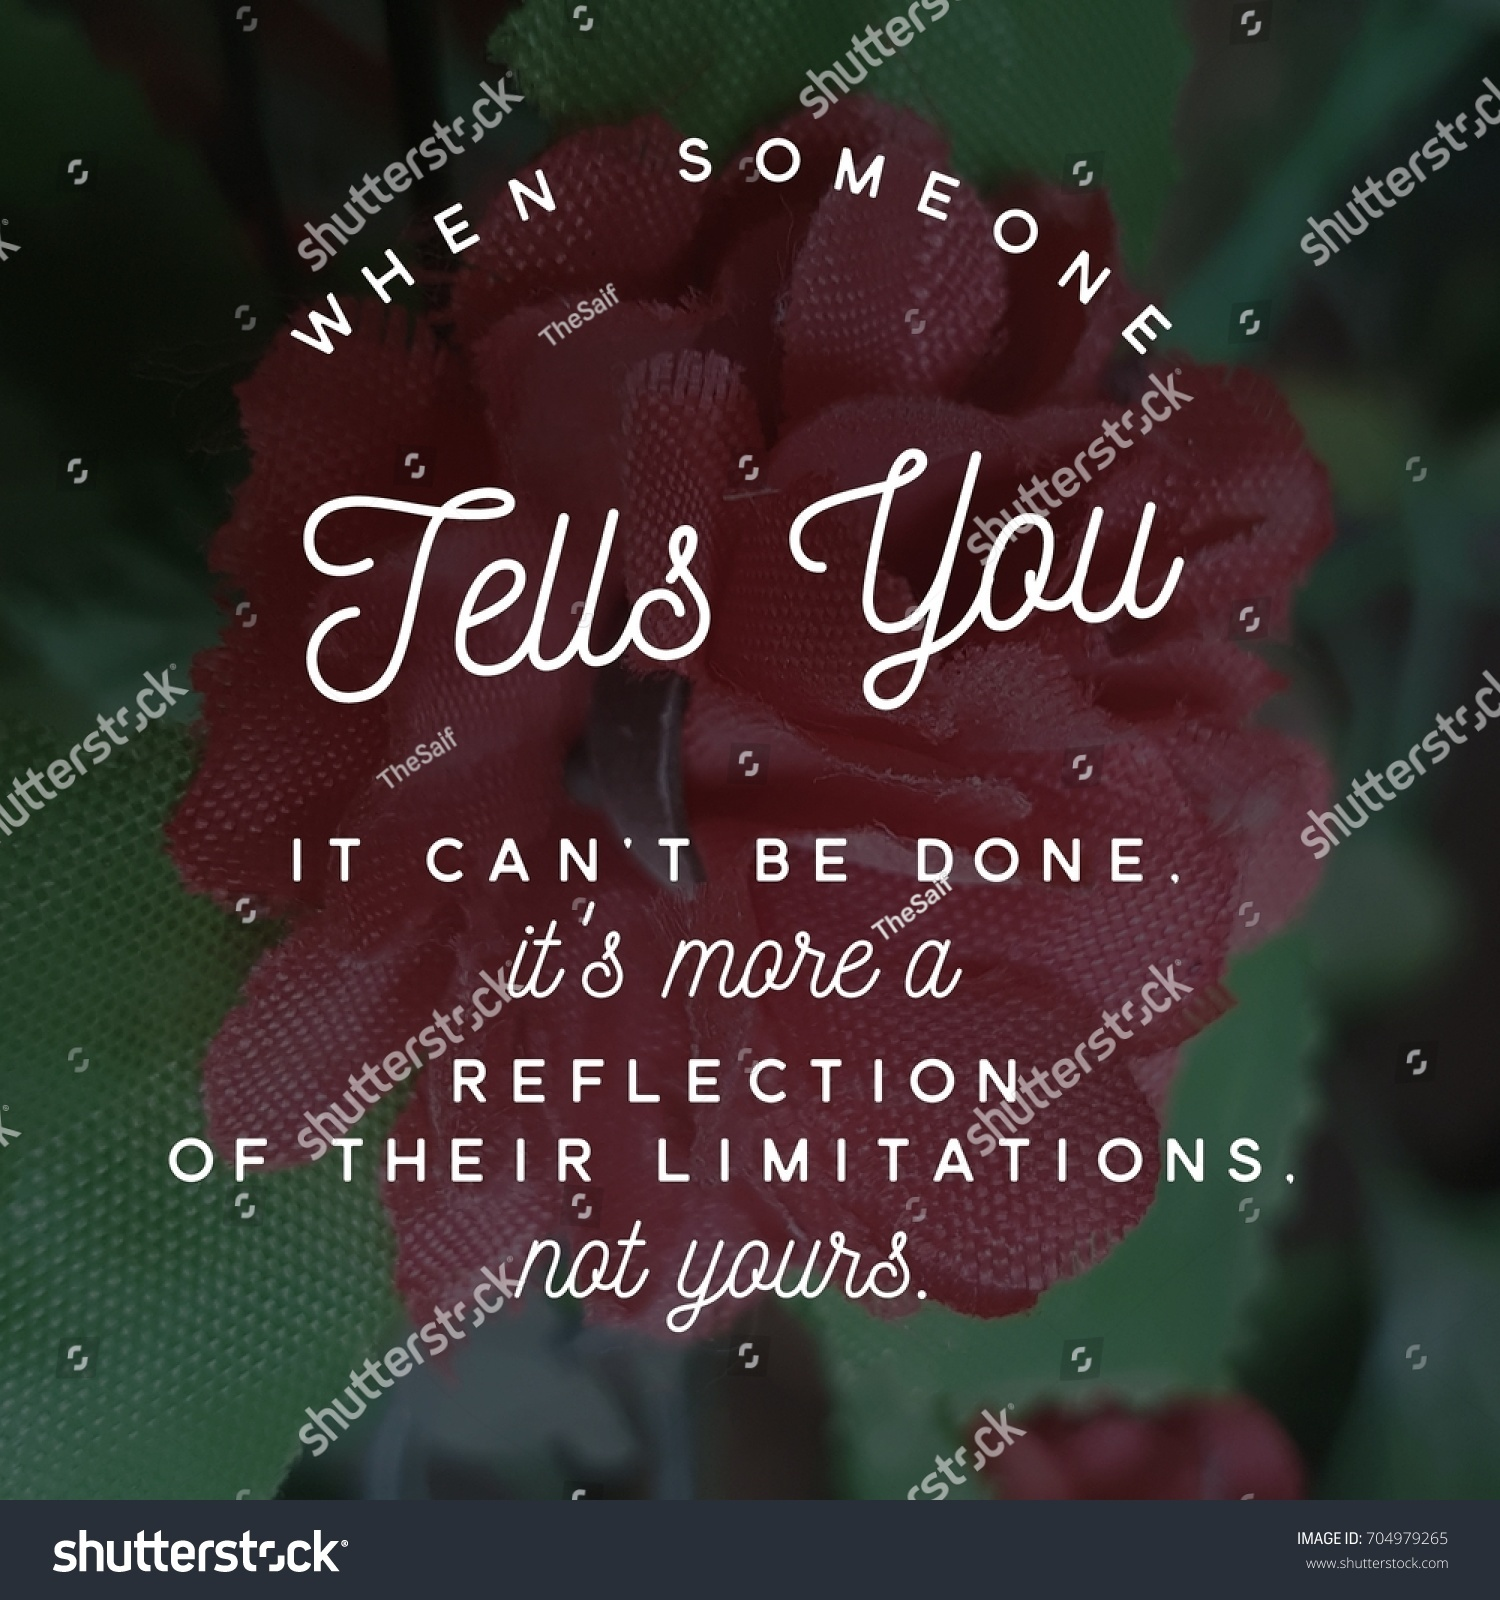 Sayings On Life Inspirational Quotes Inspirational Quote Best Motivational Quotes Sayings Stock Photo